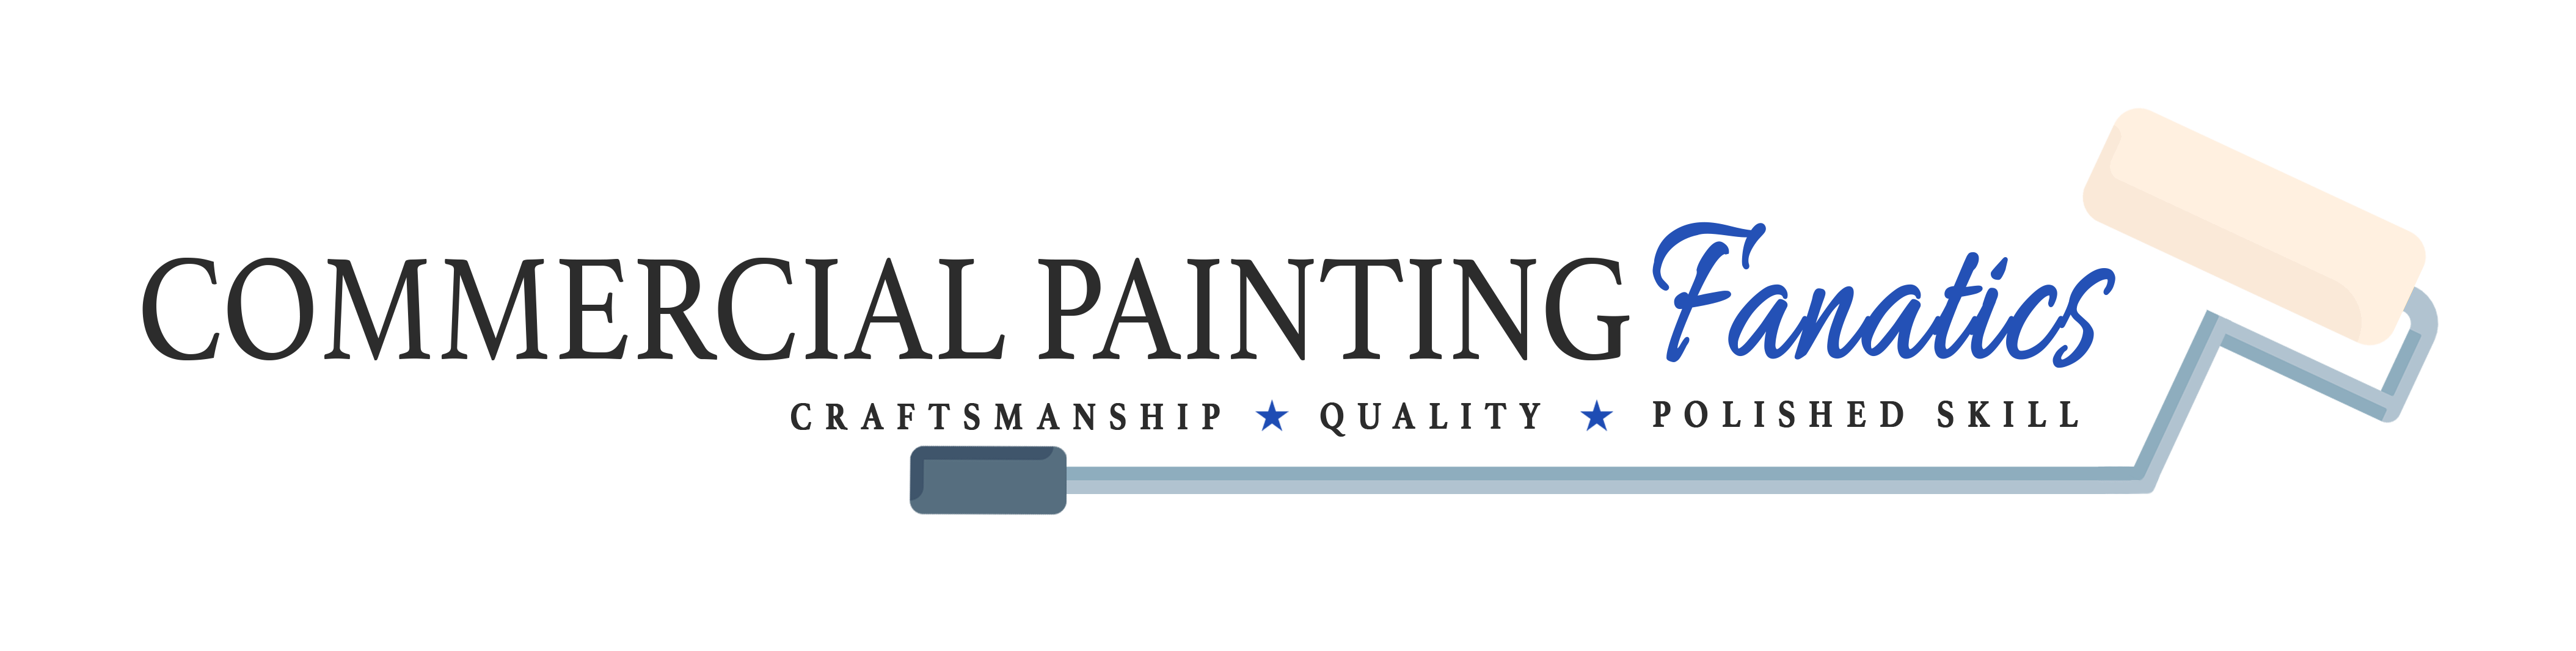 Commercial Painters NYC